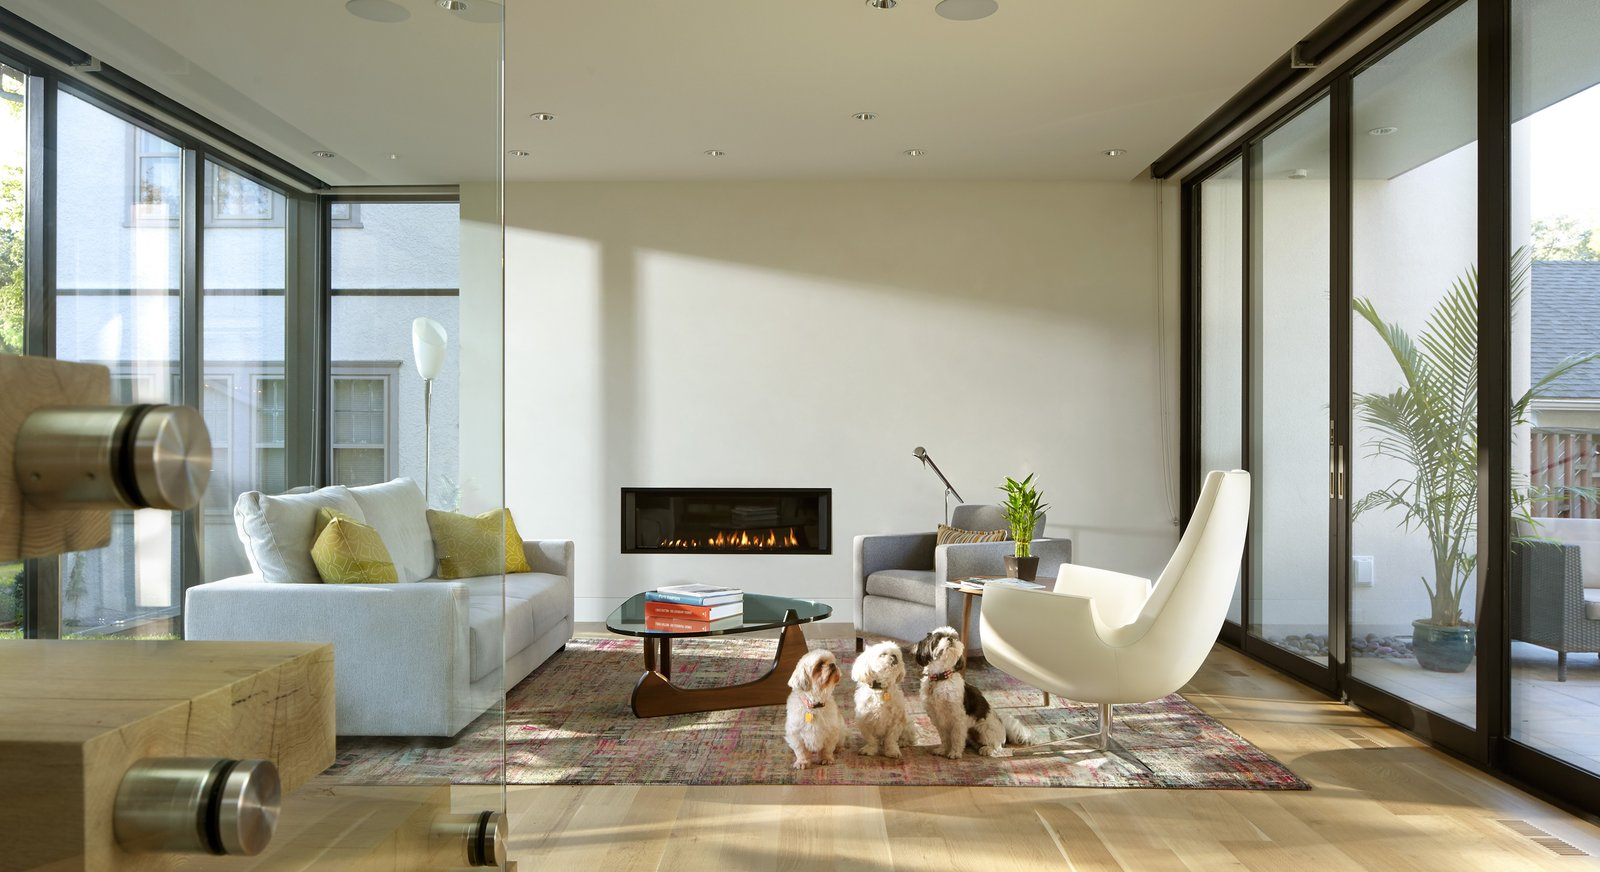 Tagged: Gas Burning Fireplace, Ceiling Lighting, Chair, Light Hardwood Floor, Staircase, Wood Tread, and Glass Railing.  Sheridan Residence by Peterssen/Keller Architecture